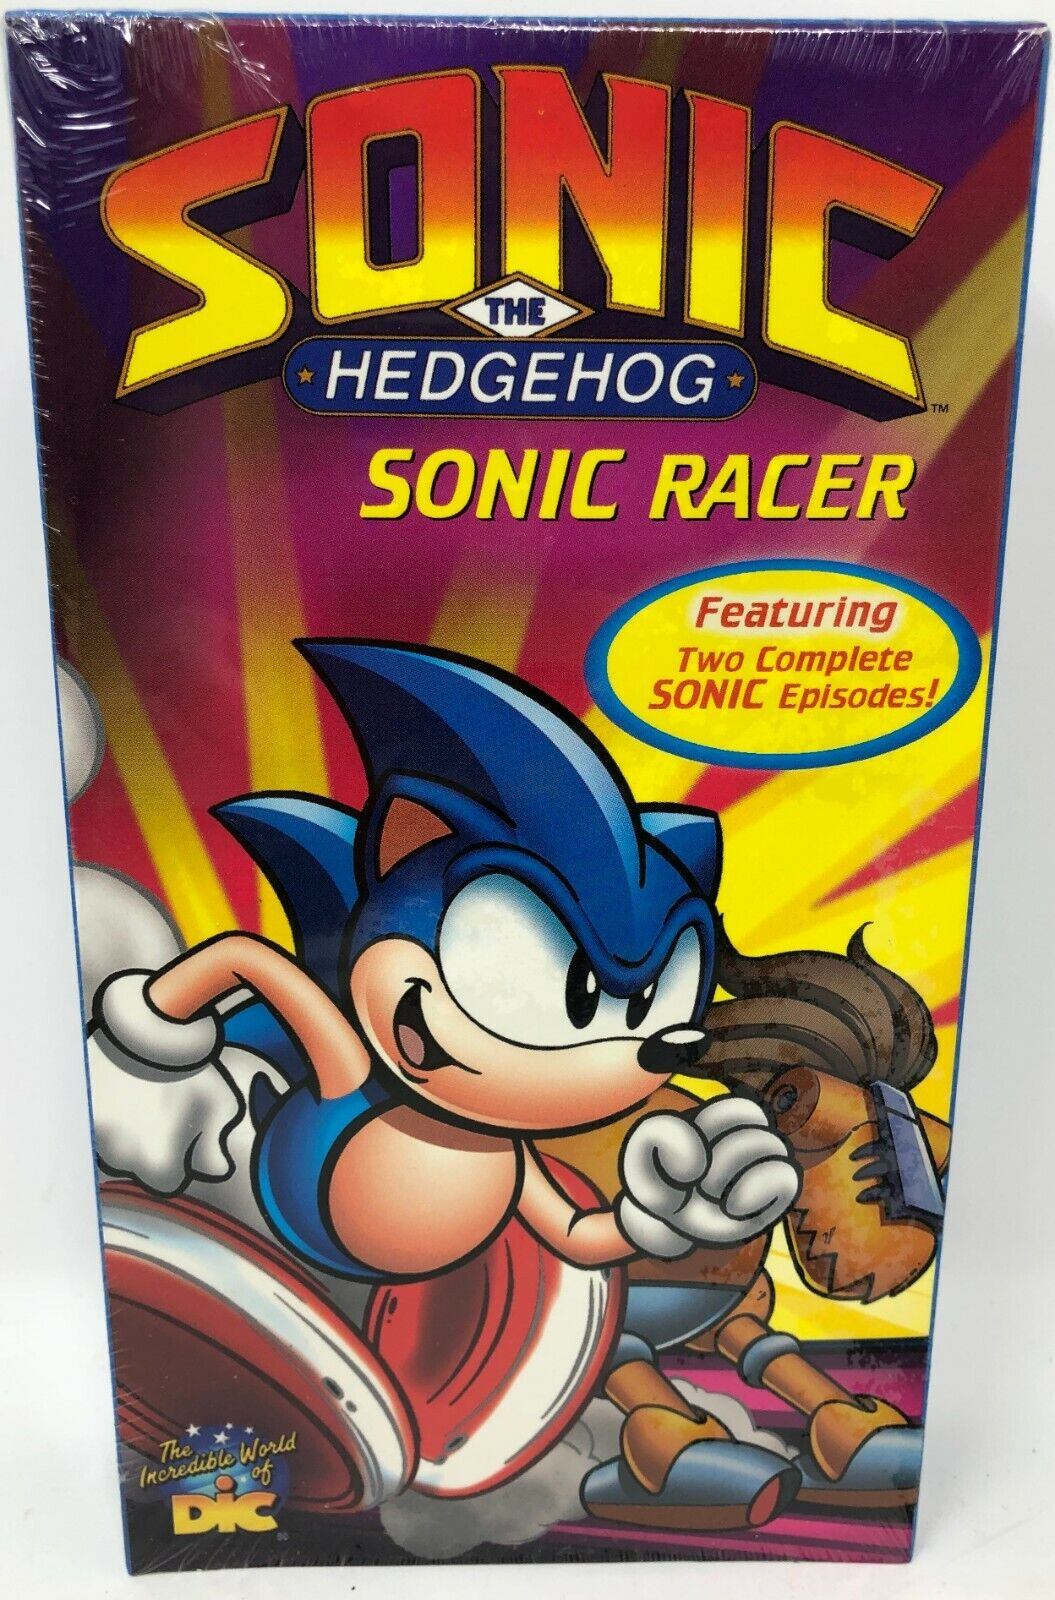 New Sealed Sonic The Hedgehog Sonic Racer Vhs Video Movie 2 Episodes 0031398791737 For Sale Online